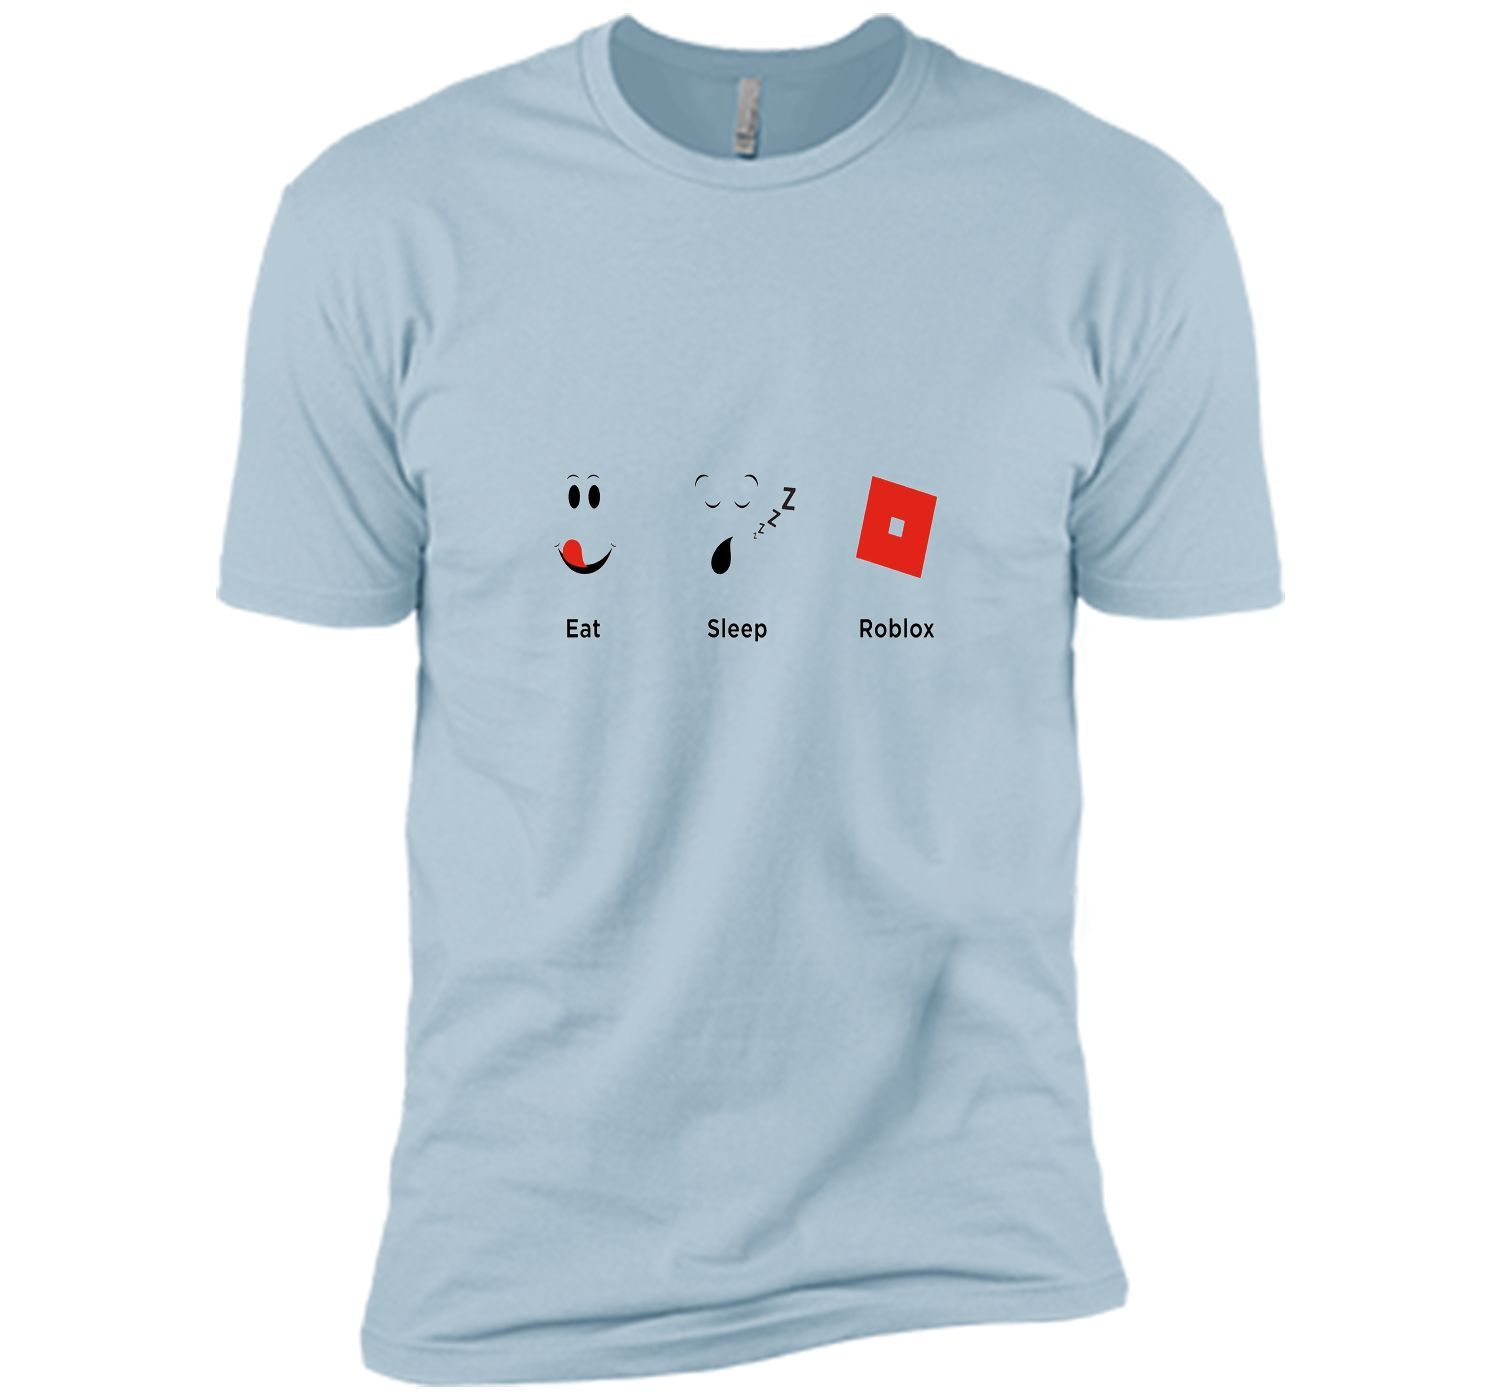 Black t shirt roblox - Roblox T Shirt